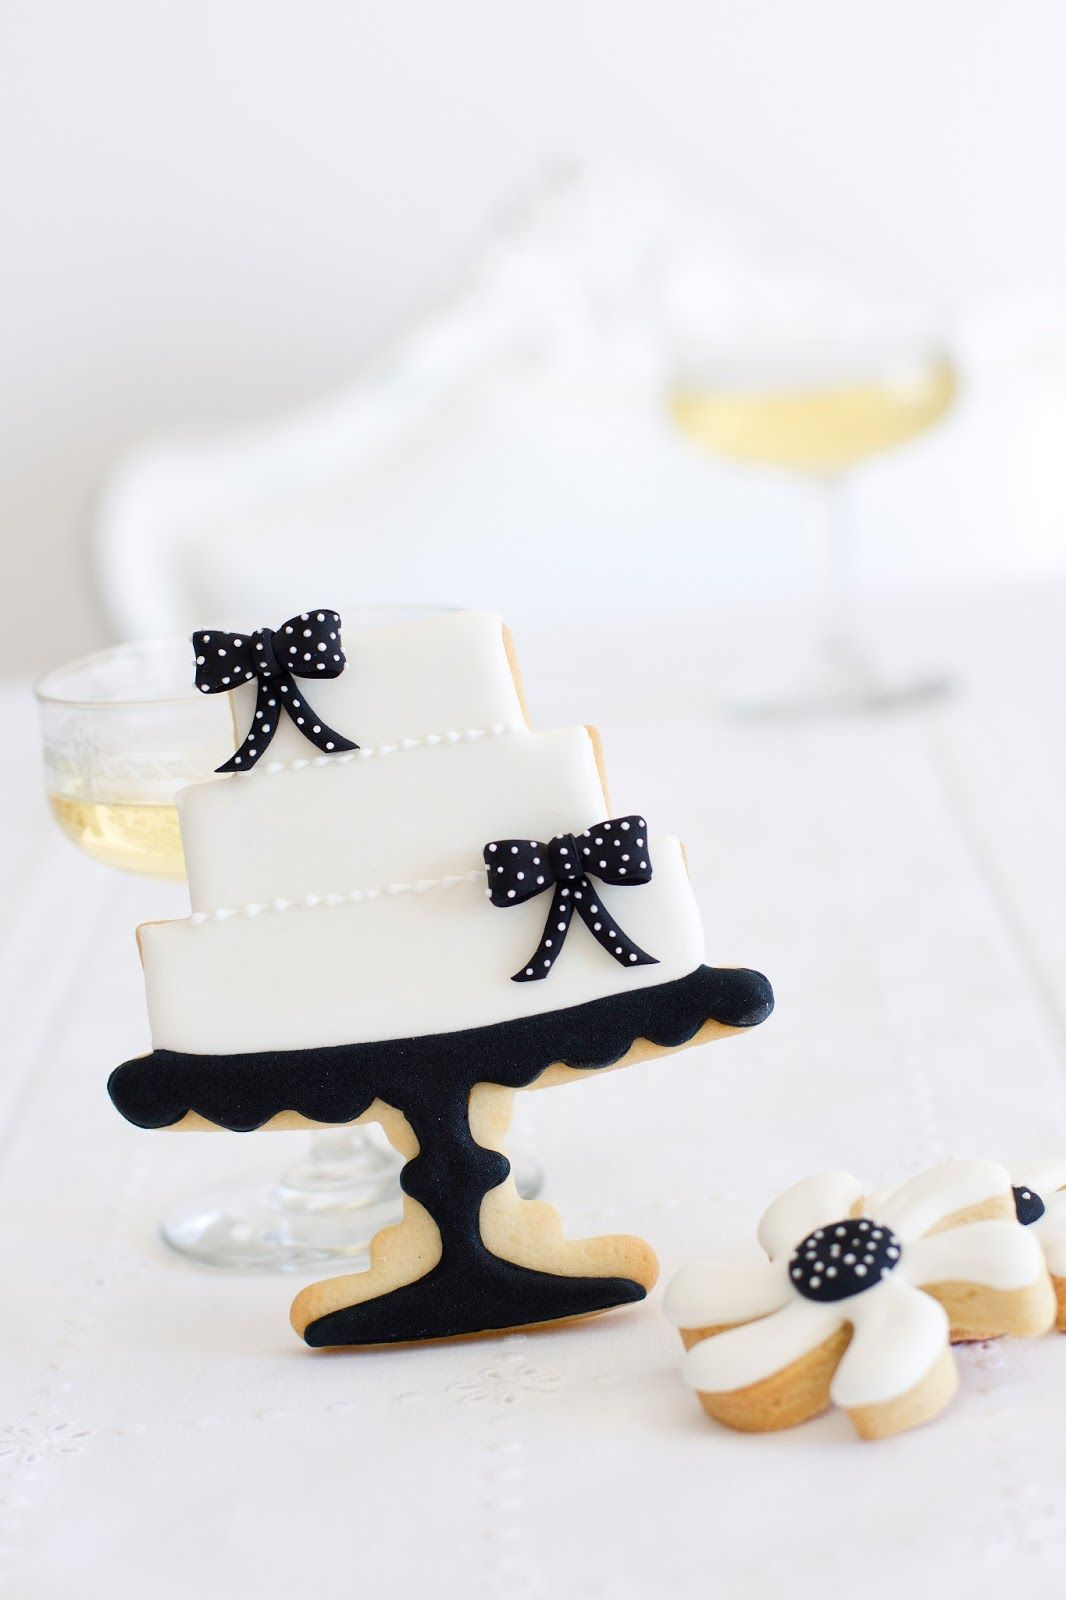 Black & White Wedding Cake Cookie from the book of Patricia ...